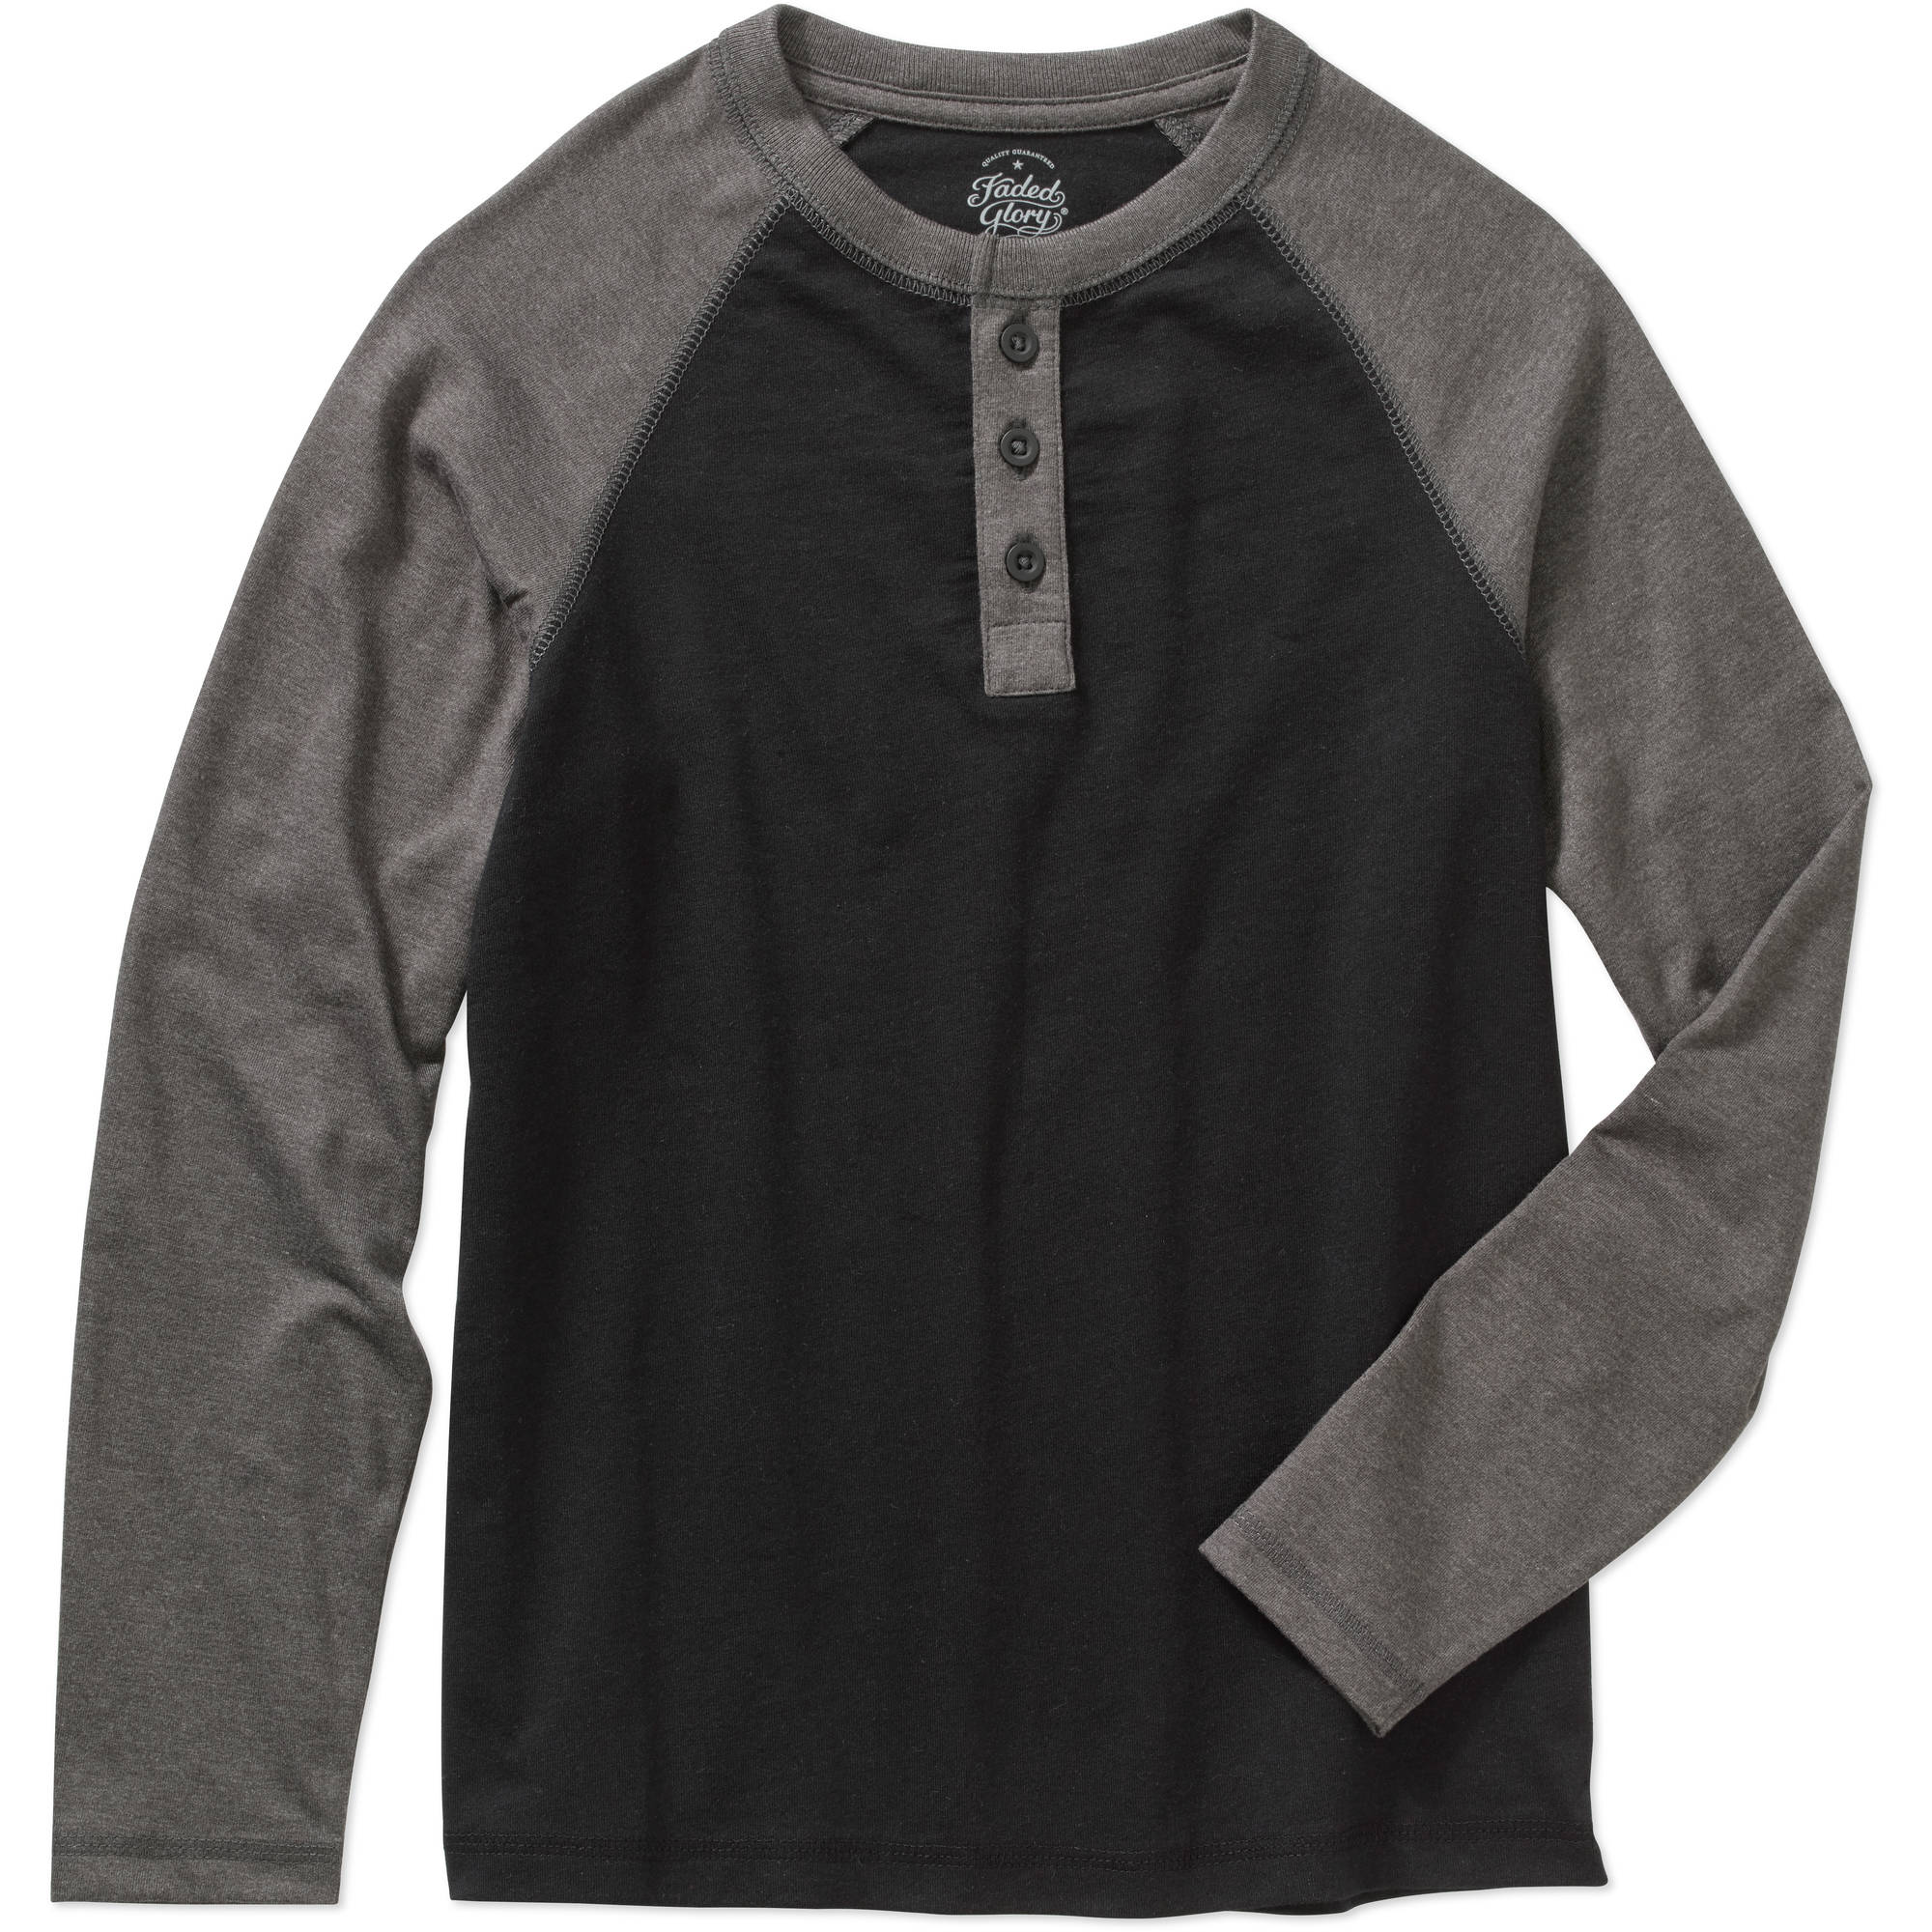 Faded Glory Boys' Long Sleeve Henley Tee